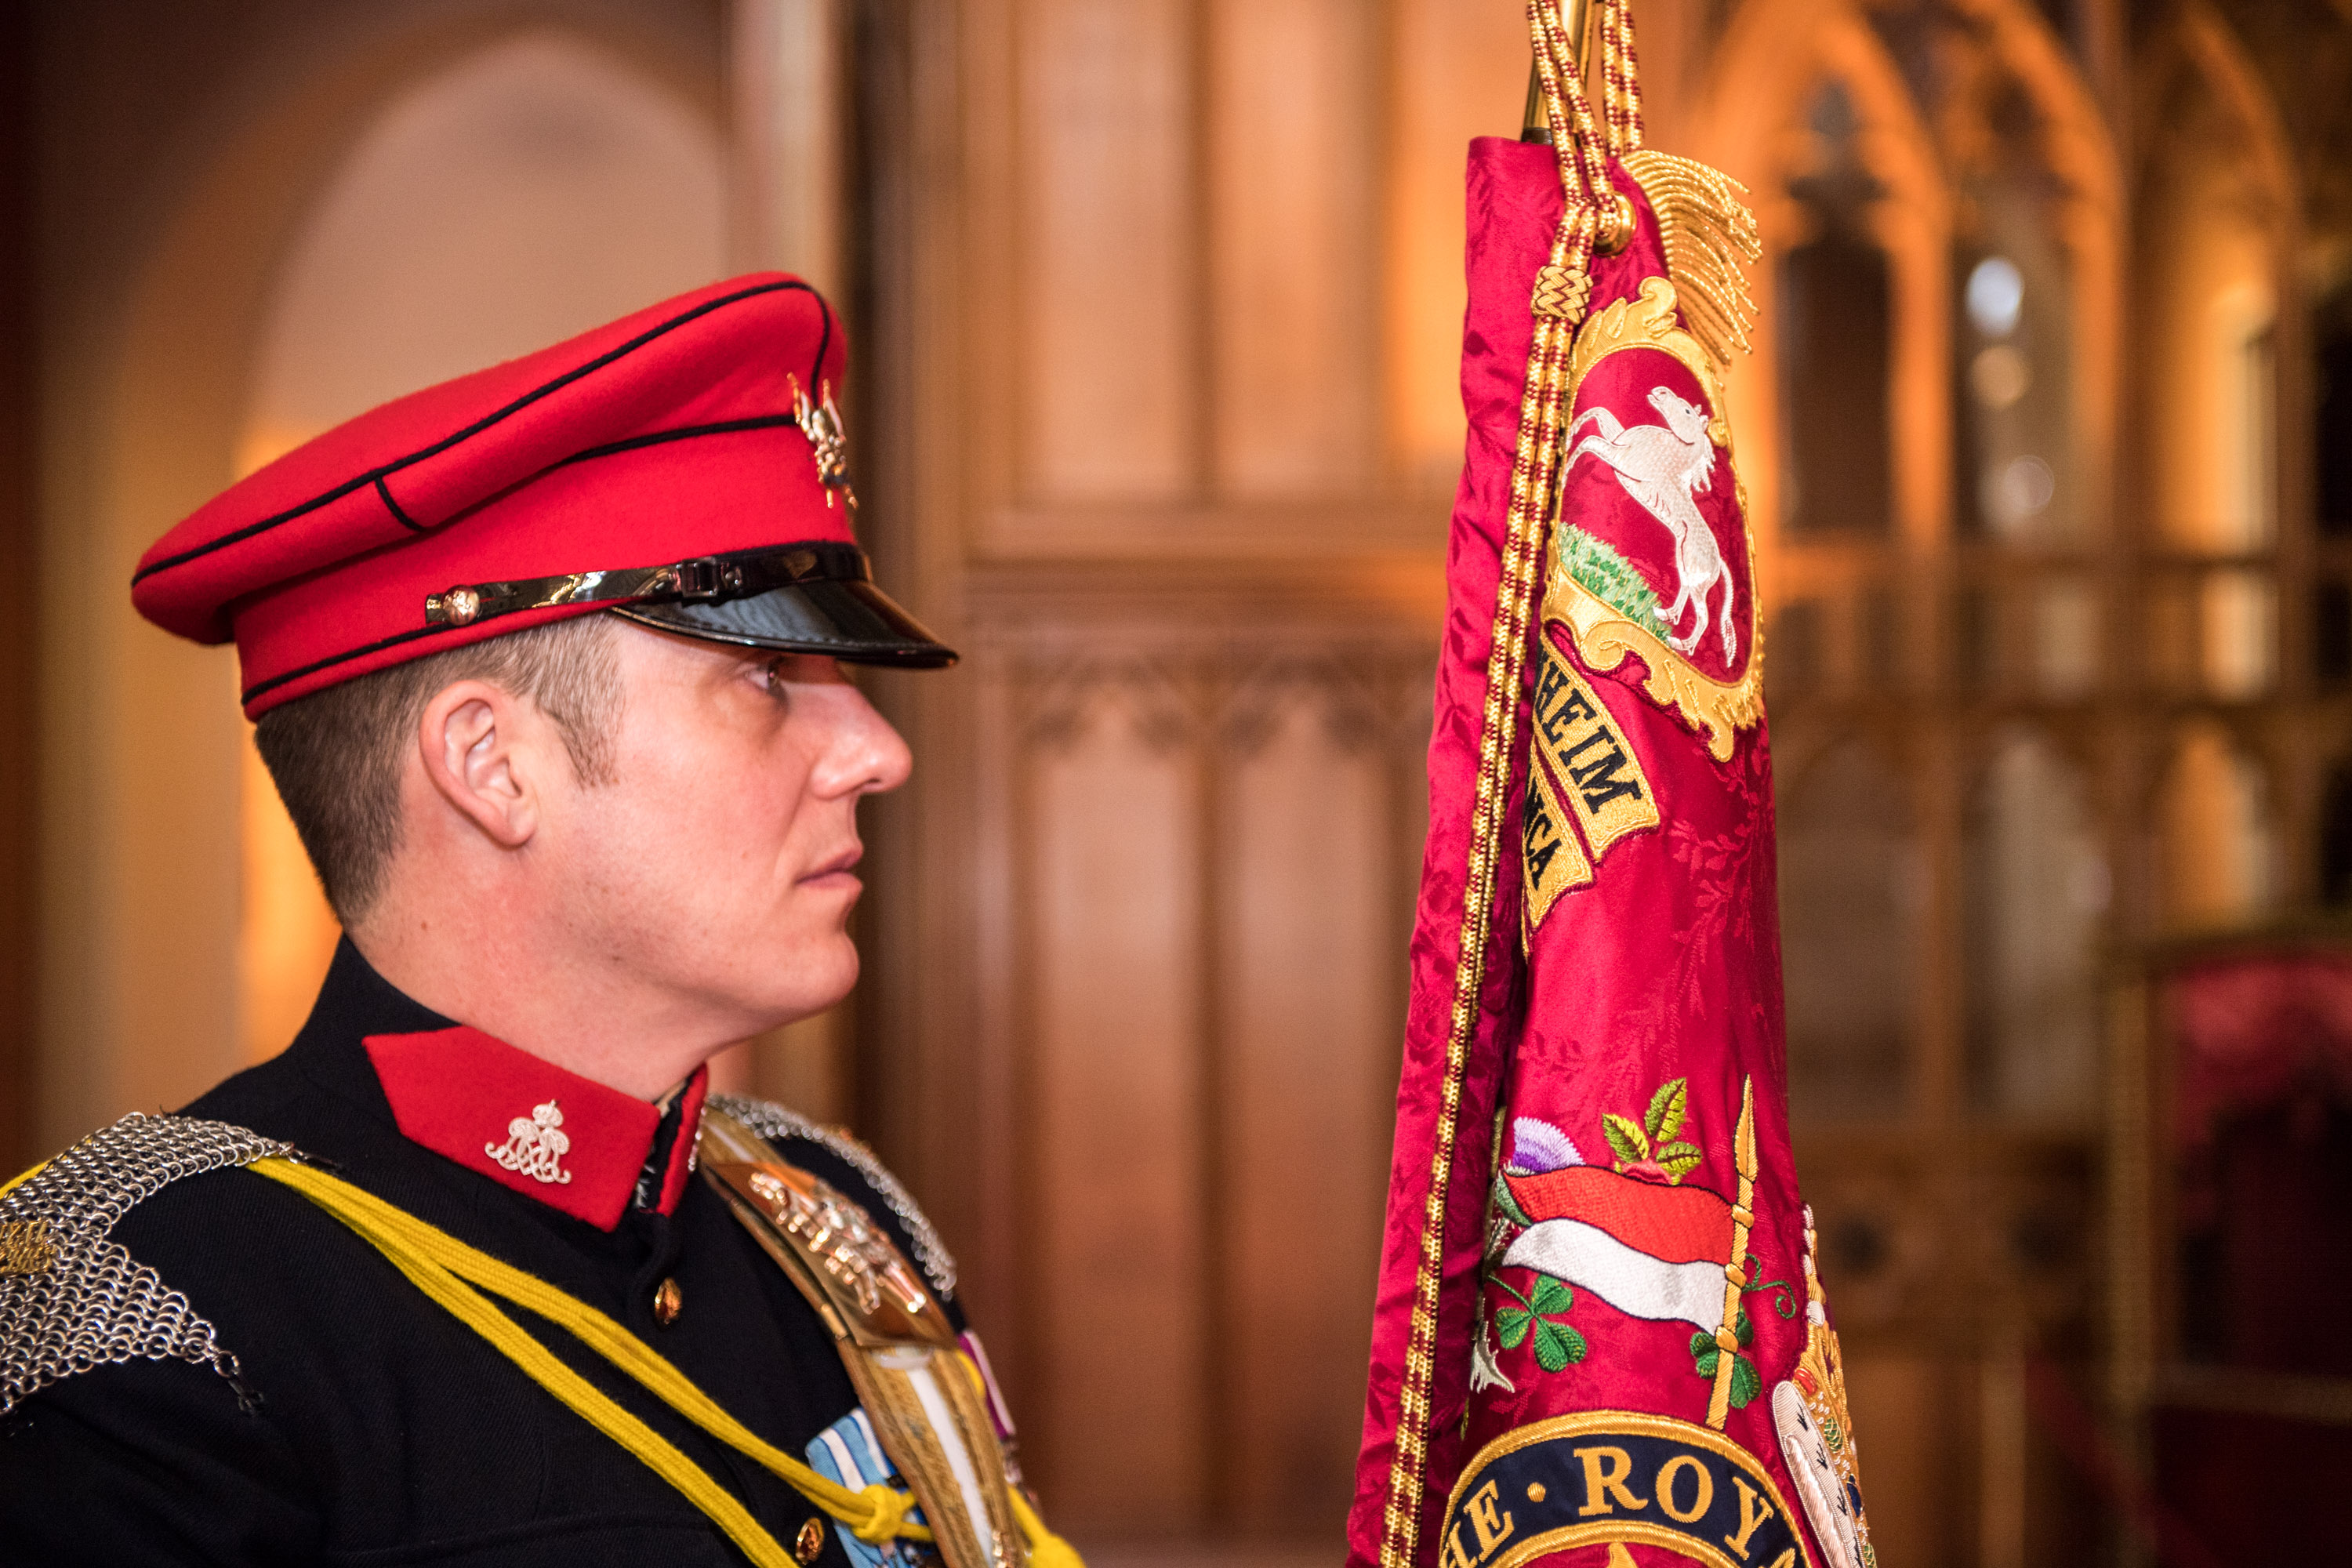 The Queen was at Windsor Castle today to present a guidon to The Royal Lancers who are based in Catterick.   The monarch also added an honorific suffix to the regiment's name to mark 70 years of her being its Colonel-in-Chief. The regiment will now be known as The Royal Lancers (The Queen Elizabeths' Own)   Also in attendance at the Berkshire residence was His Royal Highness The Duke of York, who is Deputy Colonel-in-Chief.   Sgt Rupert Frere RLC / MoD Crown